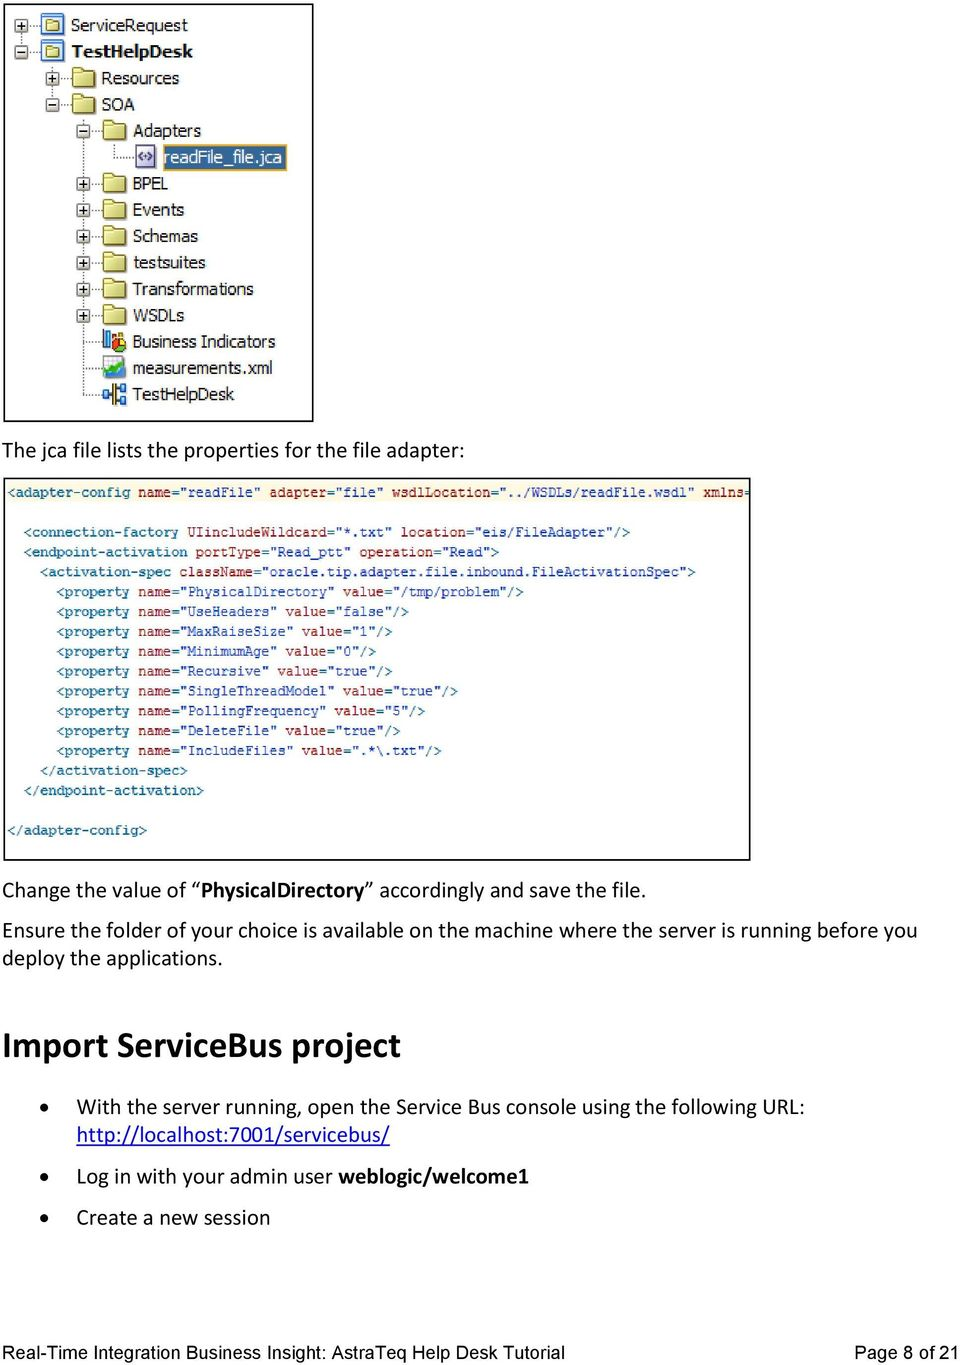 Import ServiceBus project With the server running, open the Service Bus console using the following URL: